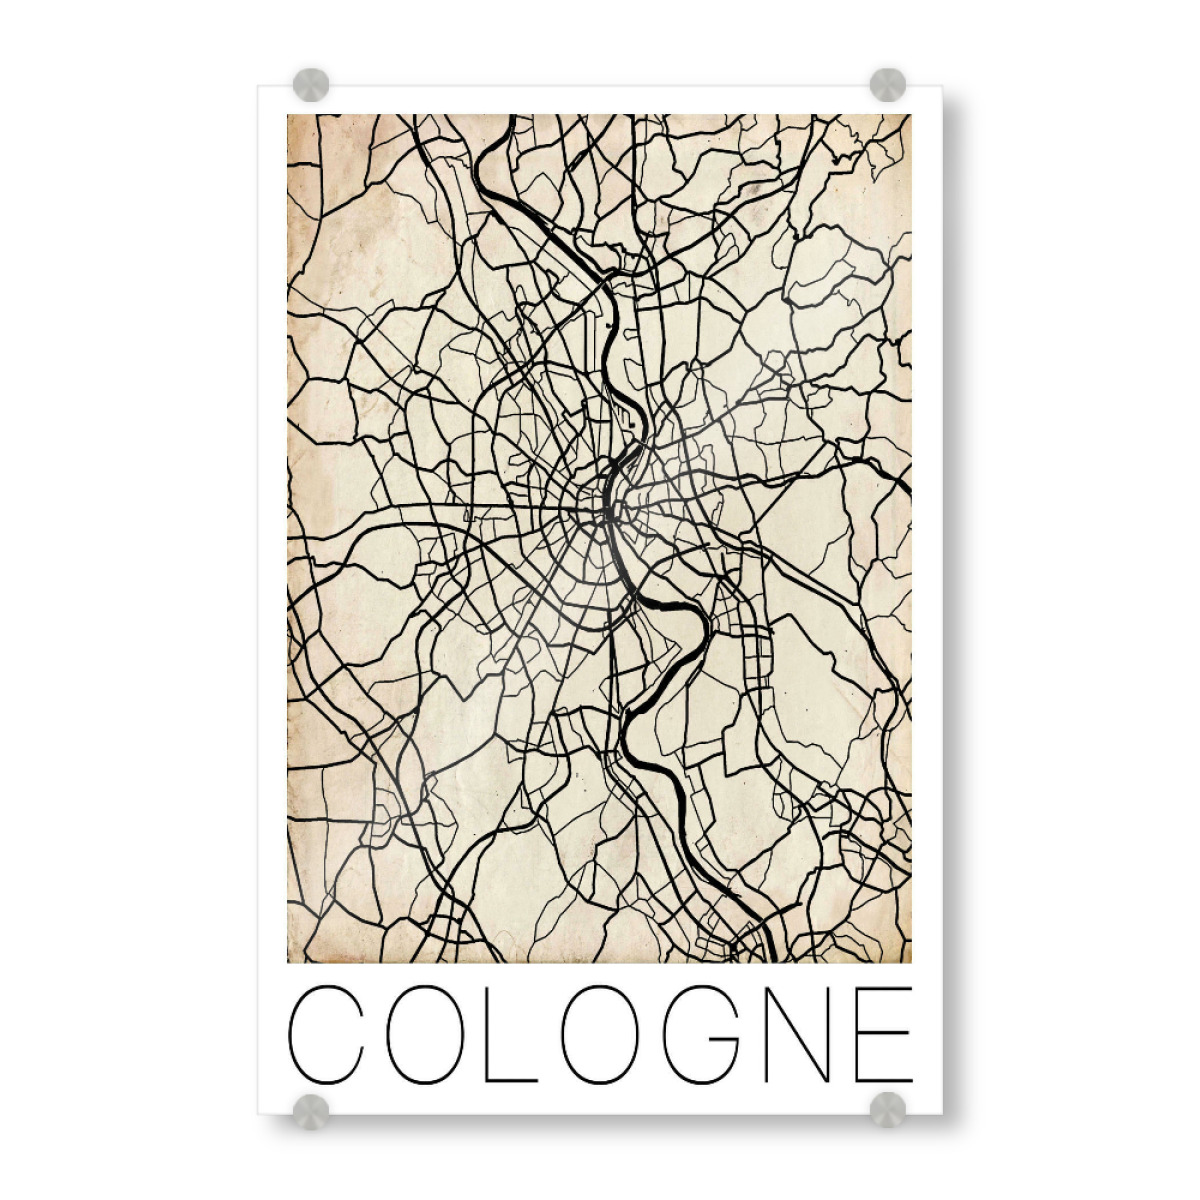 Cologne Germany Map Vintage Poster Print als bei artboxONE ...